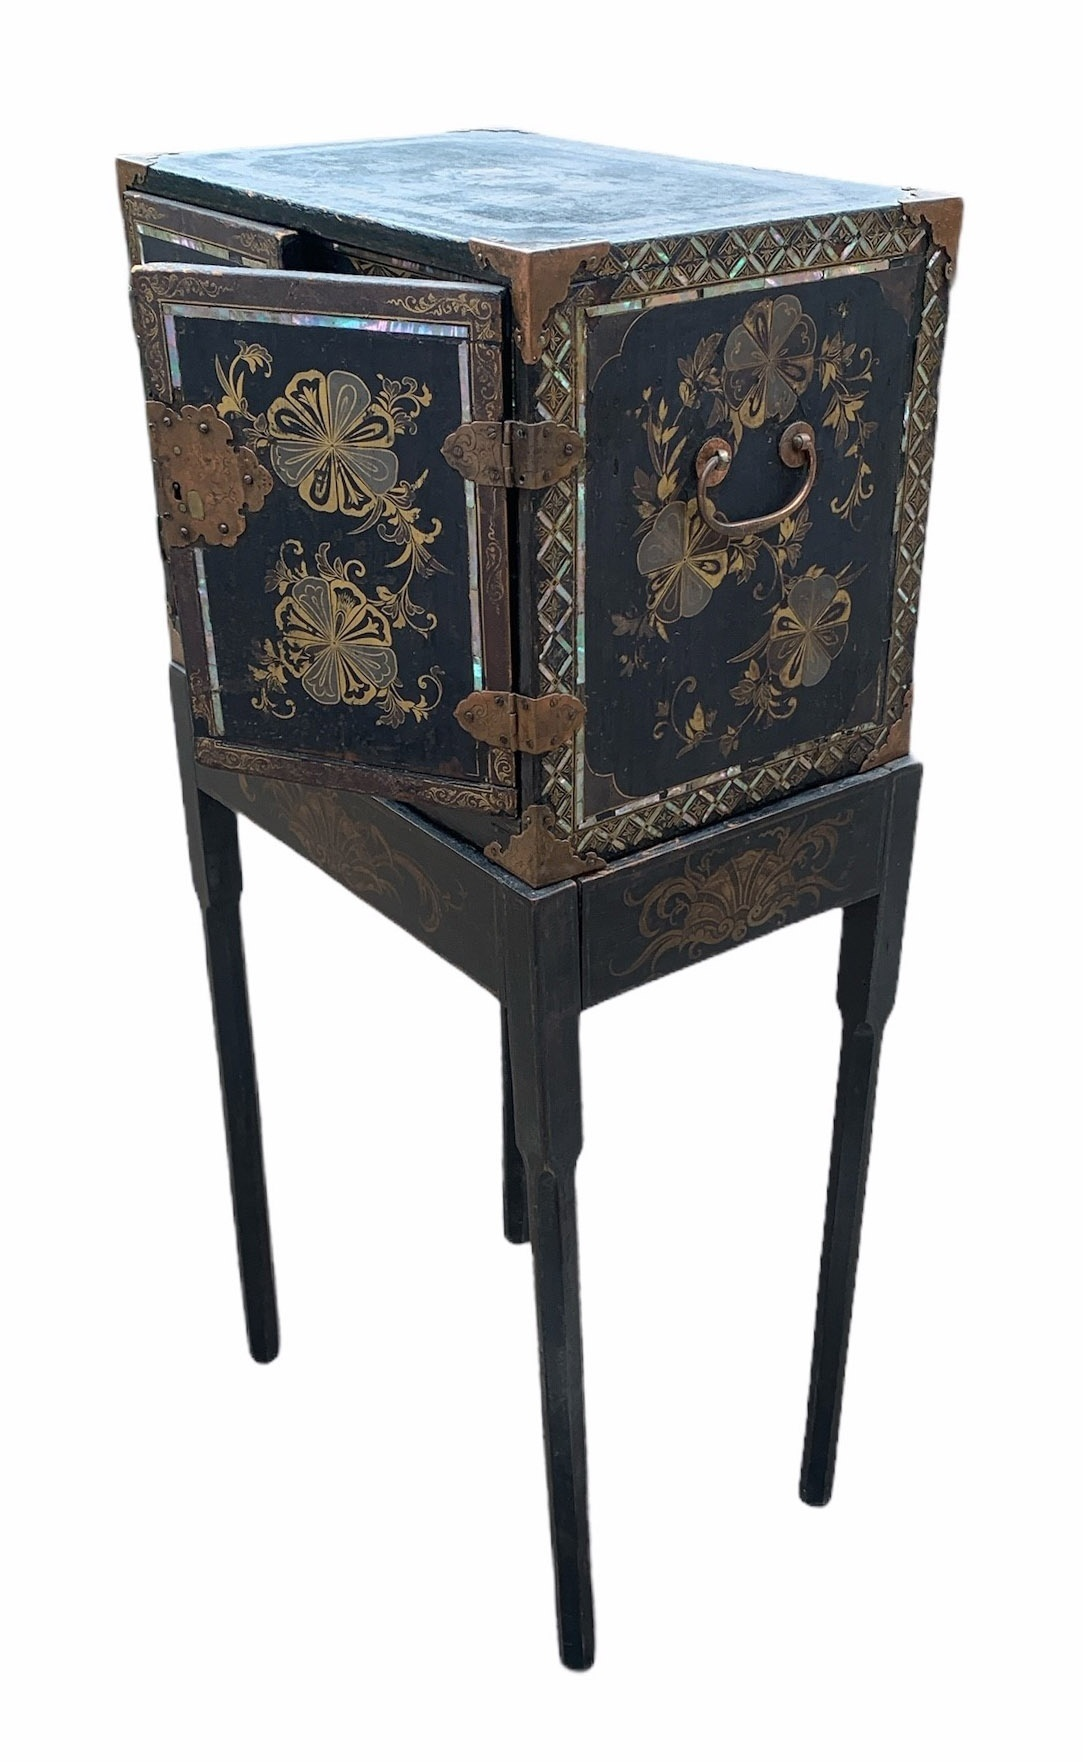 A PORTABLE INLAID EXPORT LACQUER NANBAN CABINET ON STAND Momoyama period (1573-1615) late 16th/early - Image 2 of 4